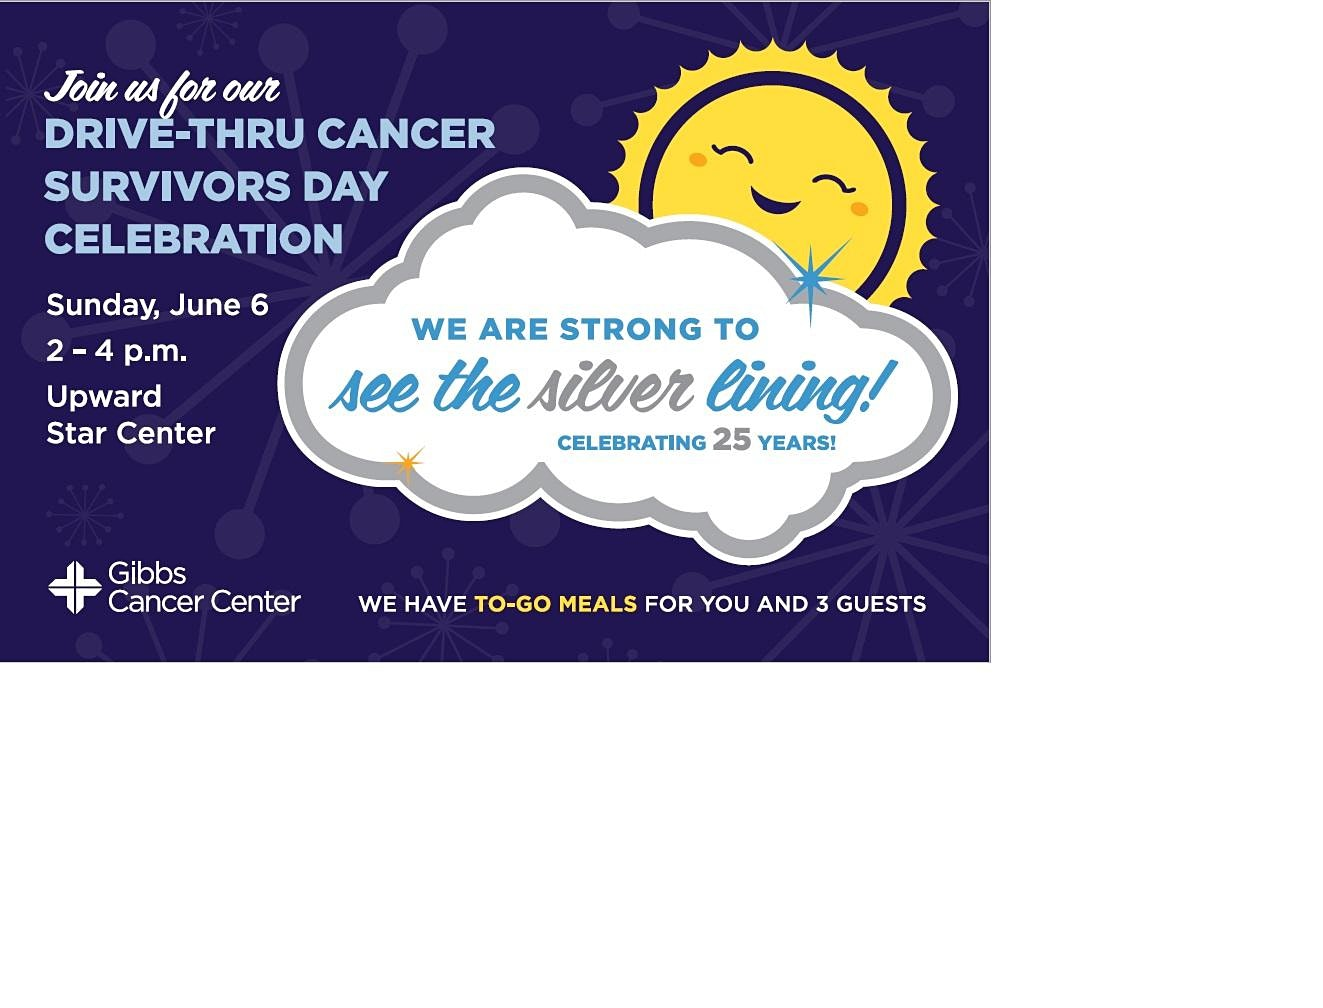 Cancer Survivors Day - Drive-Thru Celebration